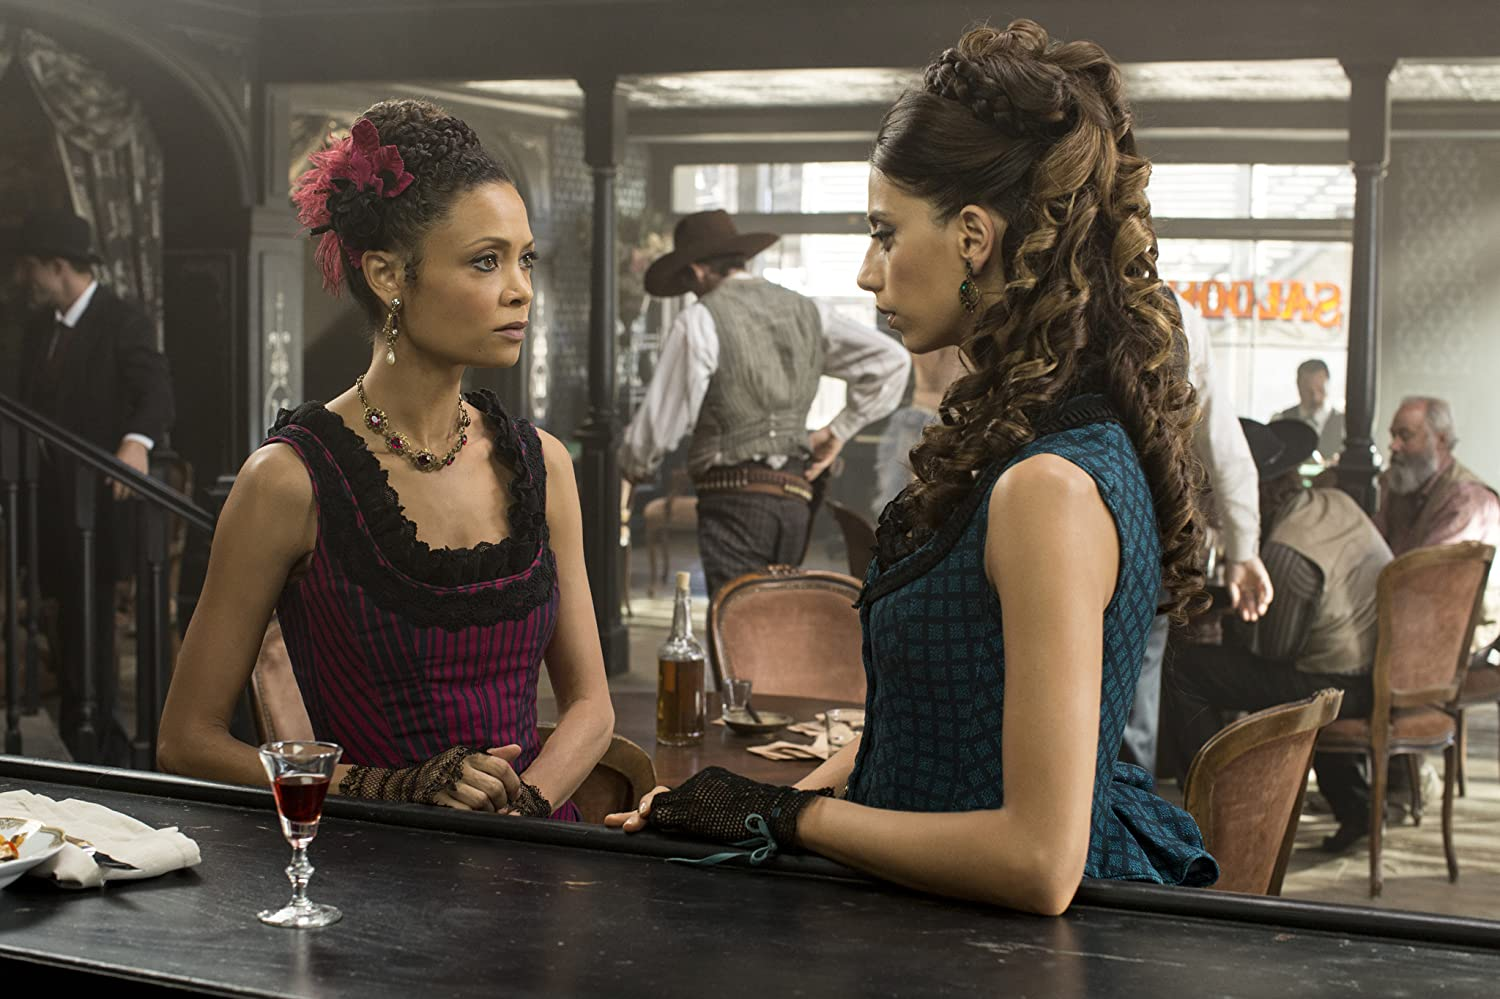 Thandie Newton and Angela Sarafyan in Westworld (2016)